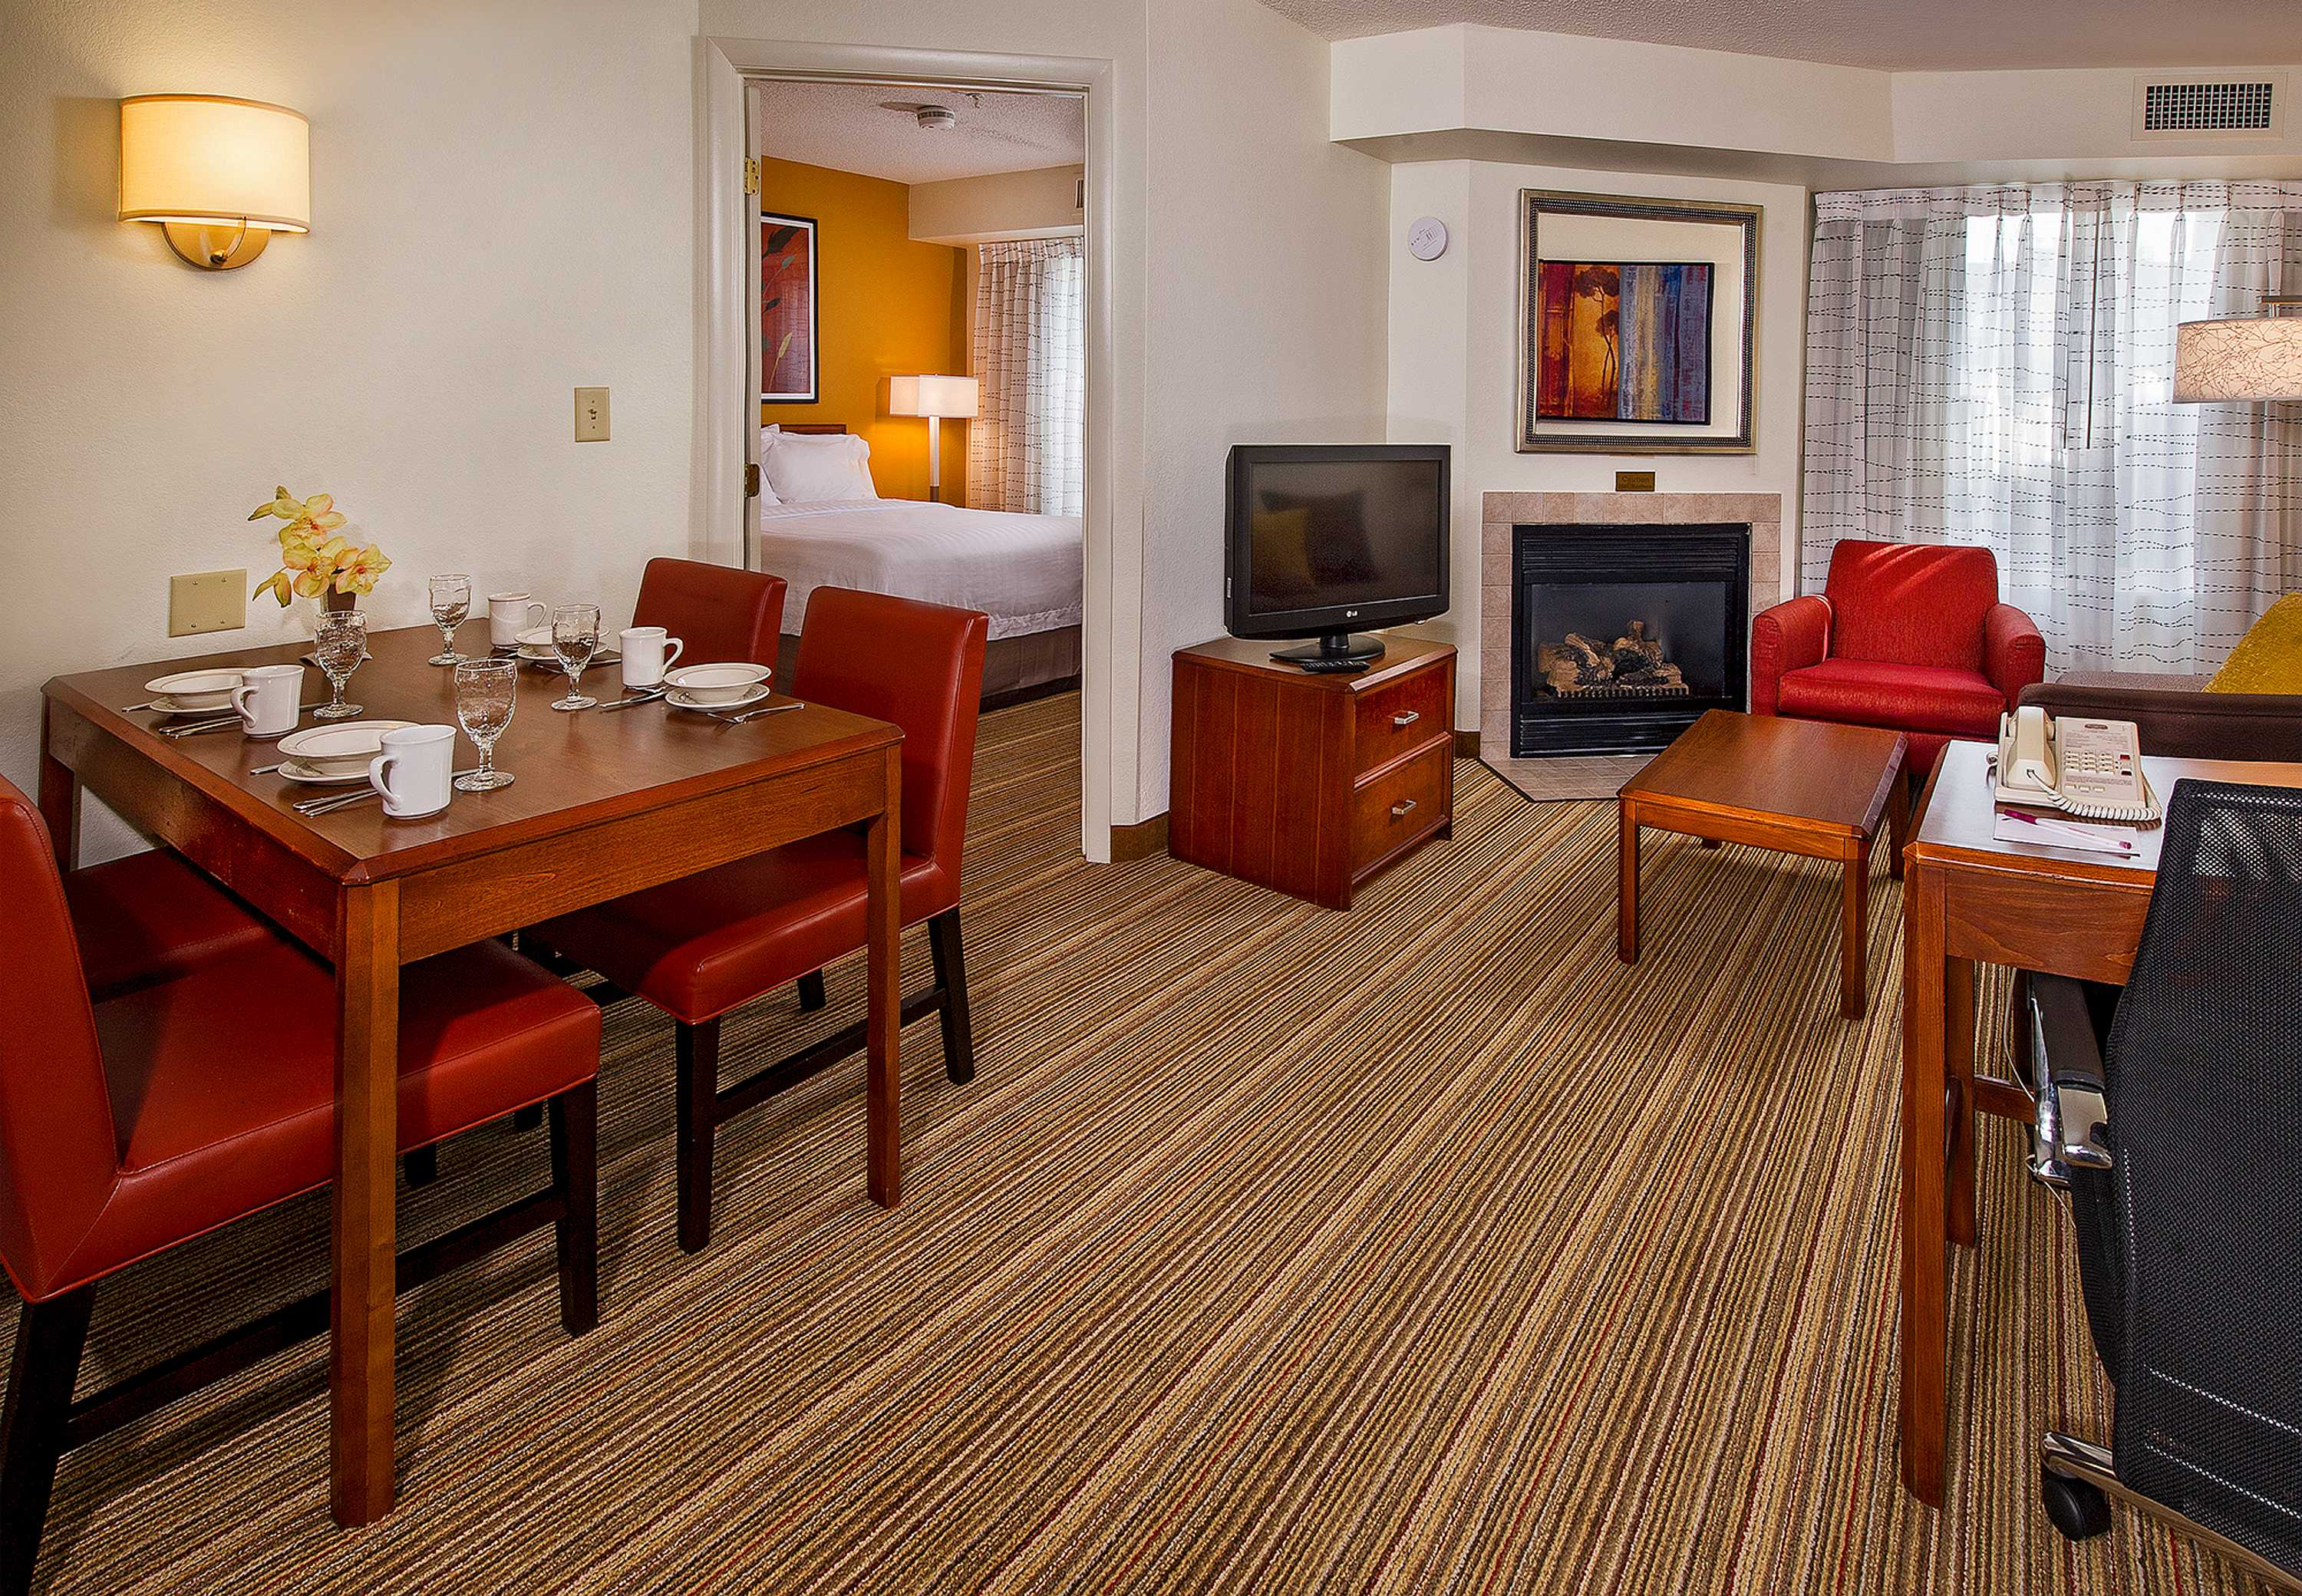 Residence Inn by Marriott Raleigh Cary image 4